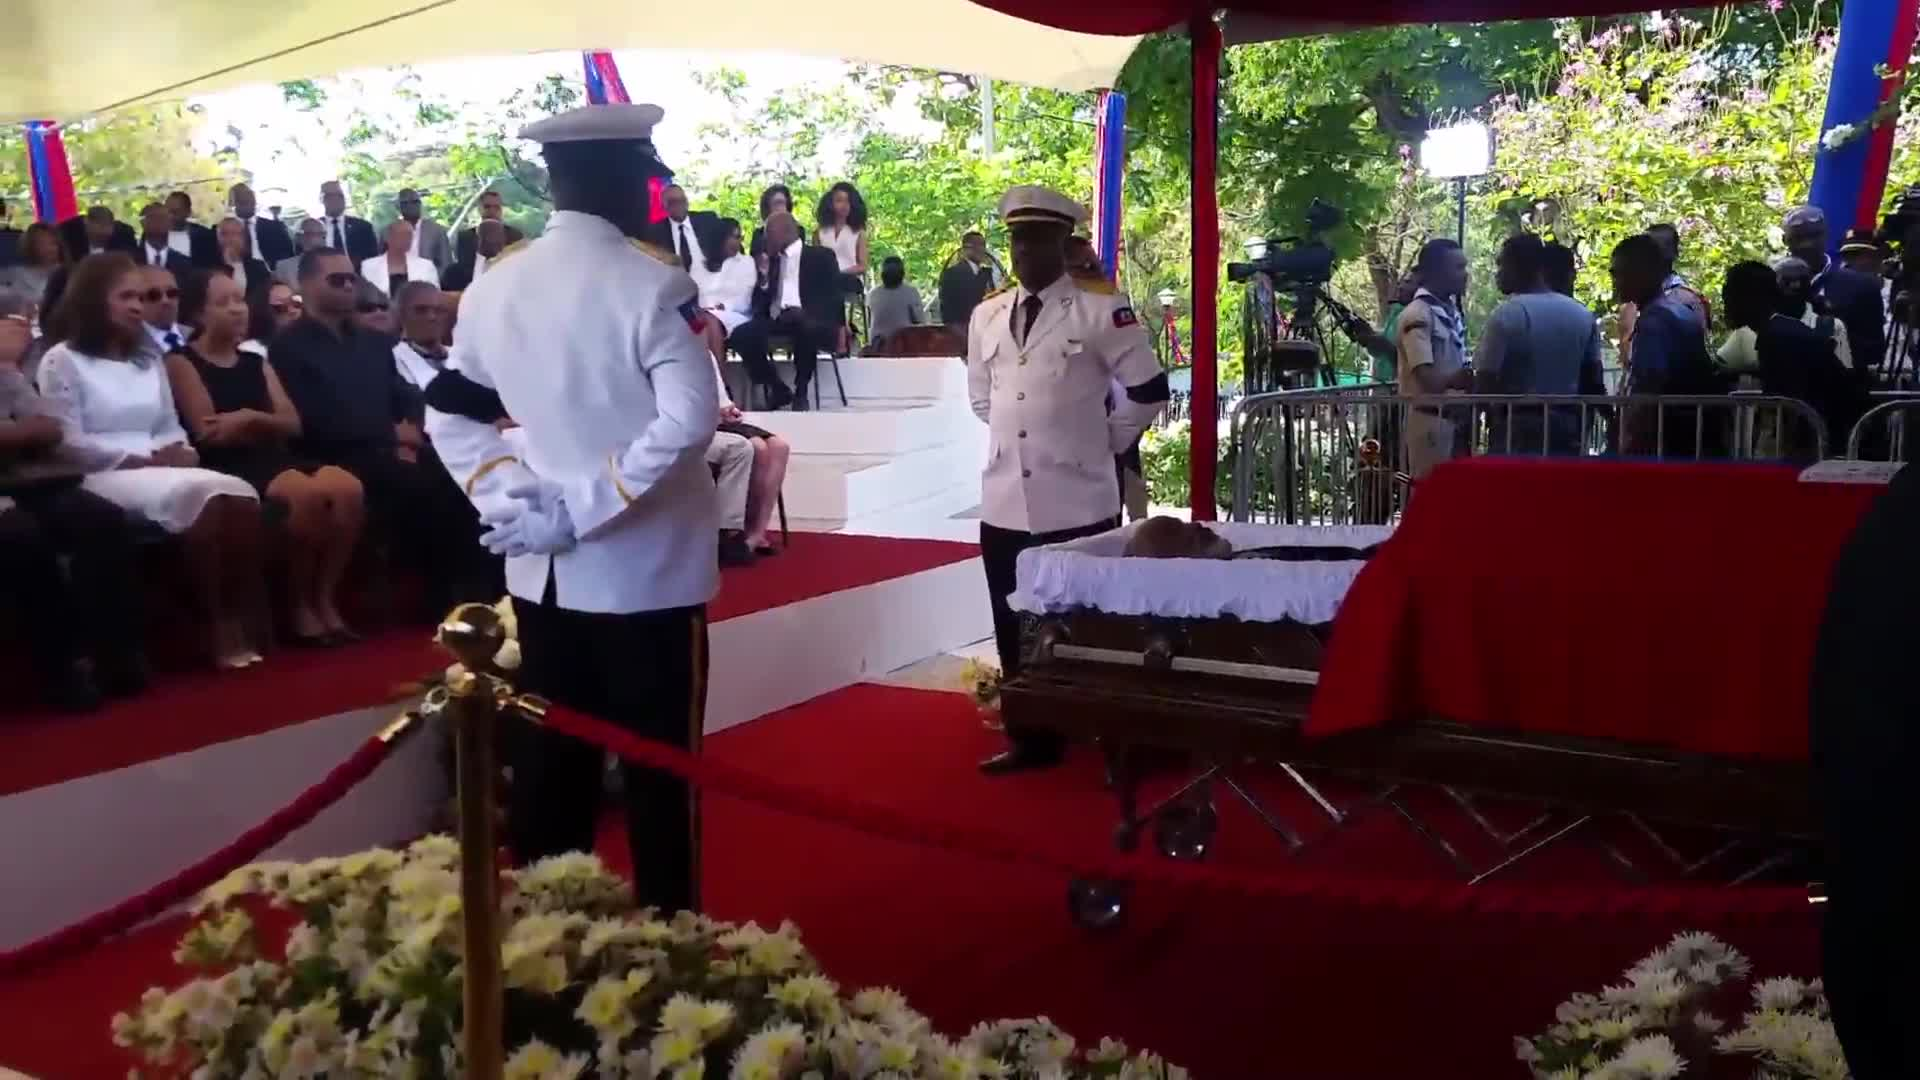 Thousands gather to mourn former Haitian president Preval